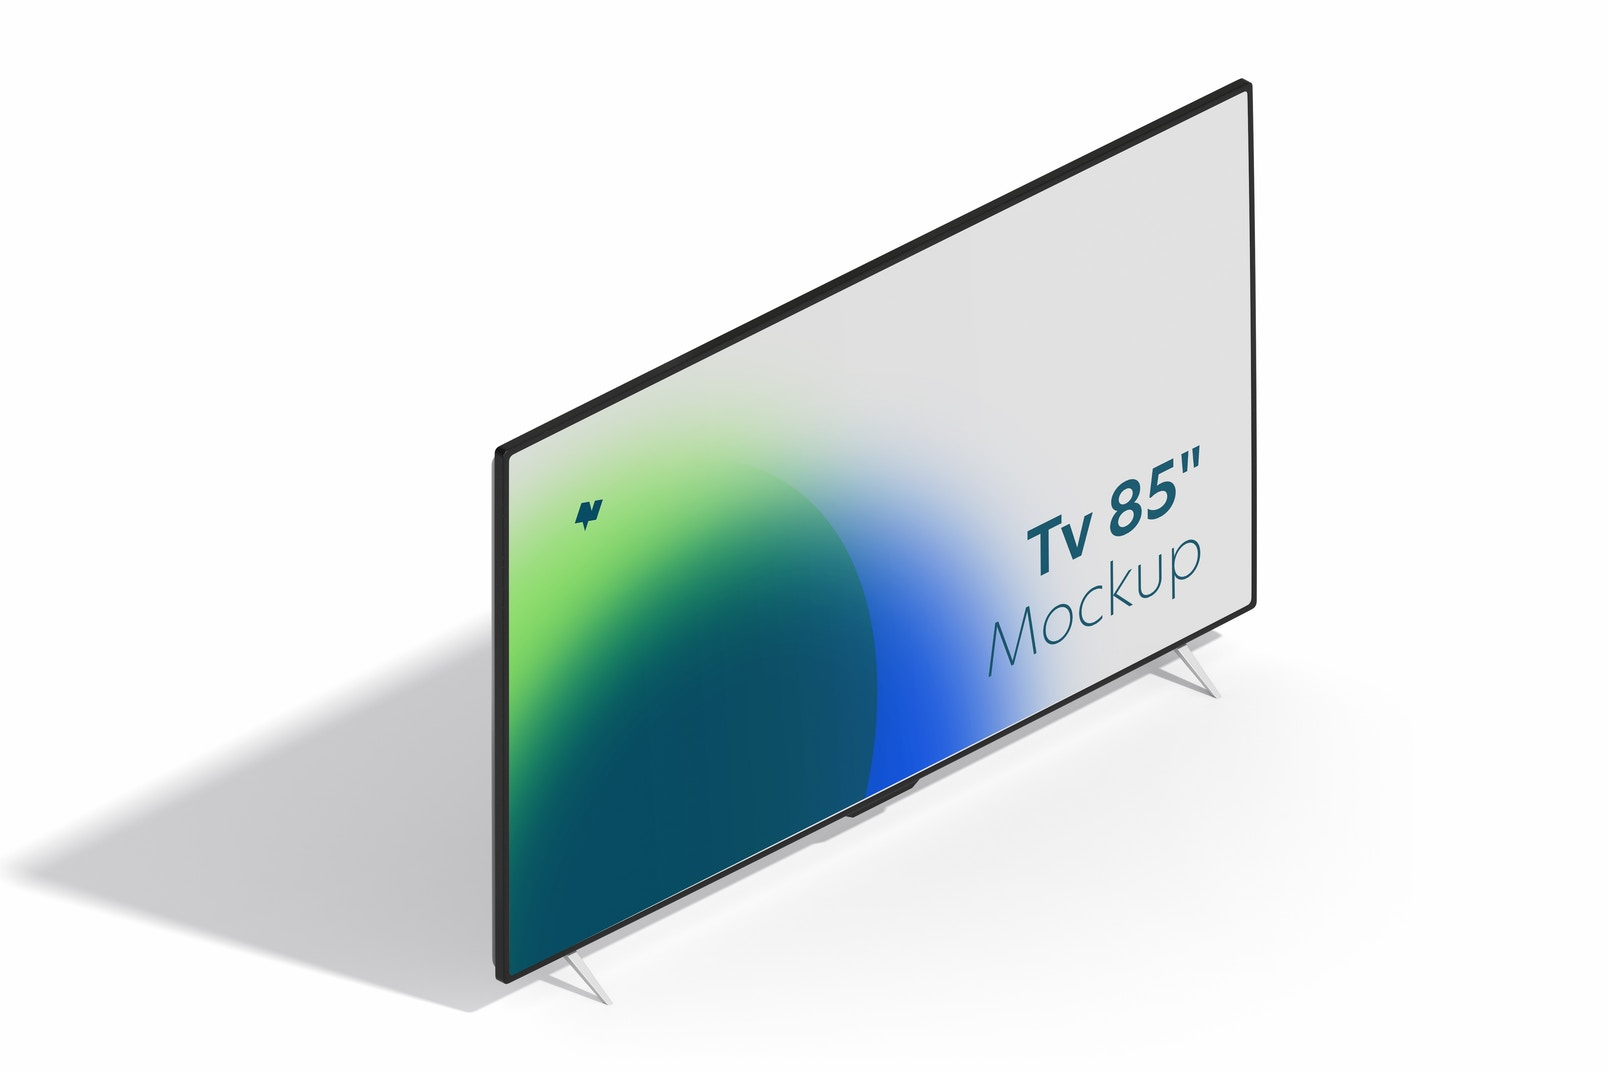 """TV 85"""" Mockup, Right View"""